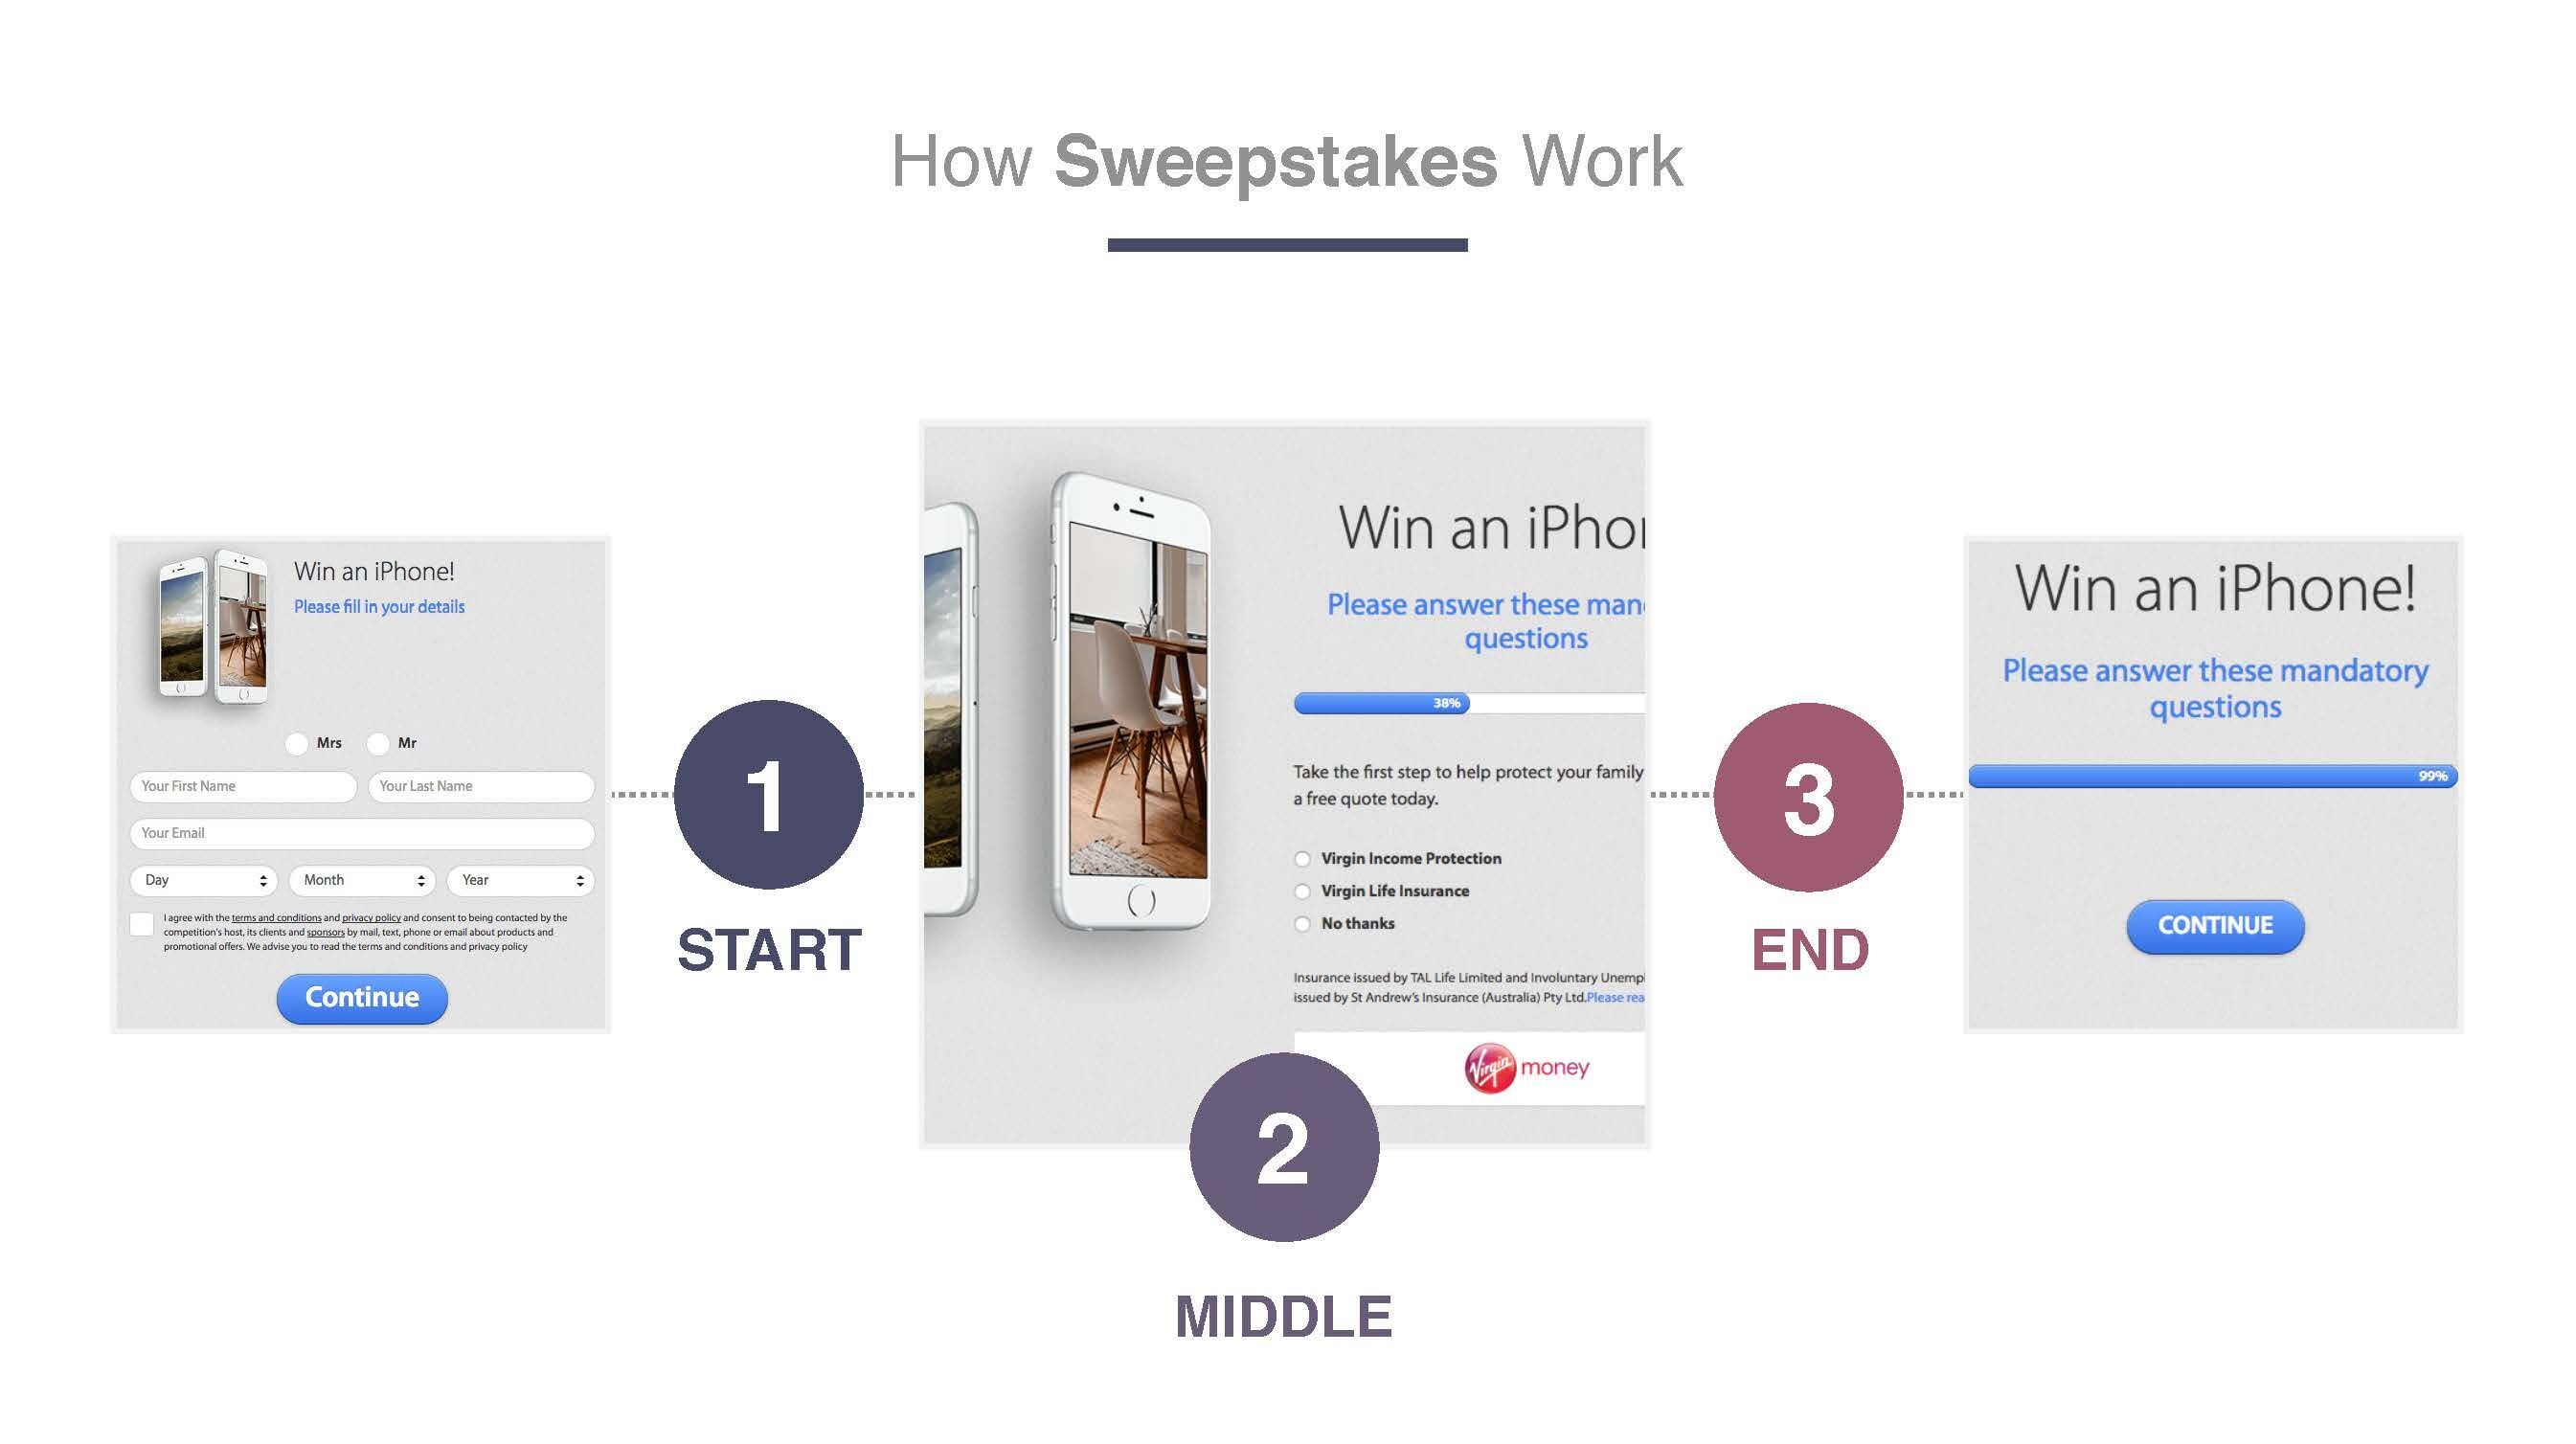 Alexander Willemsen – How Sweepstakes Work